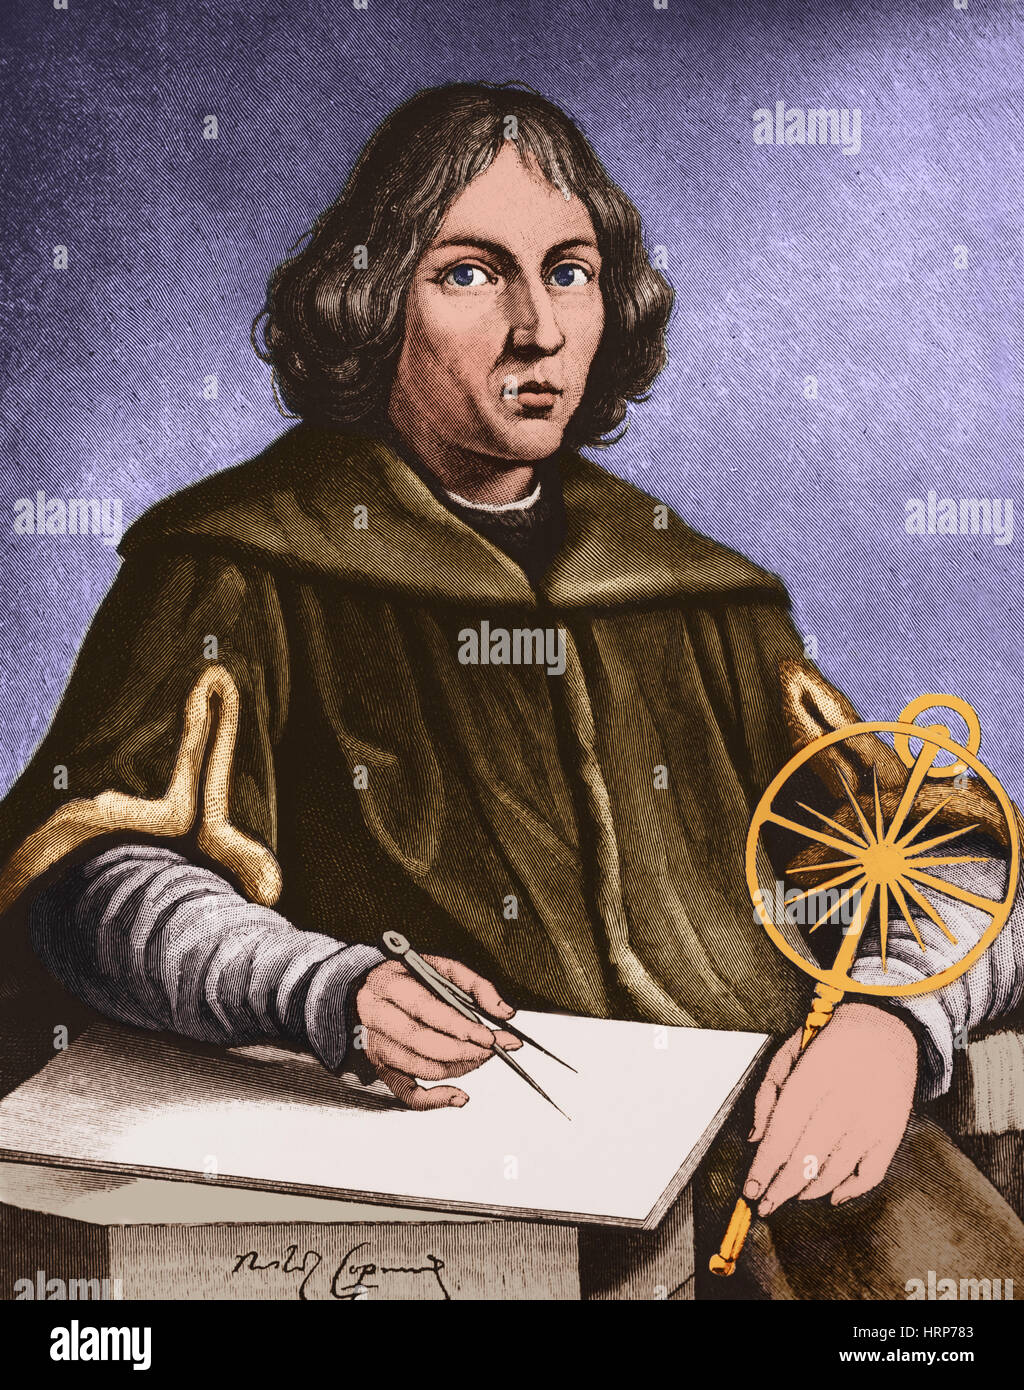 Nicolaus Copernicus Portrait High Resolution Stock